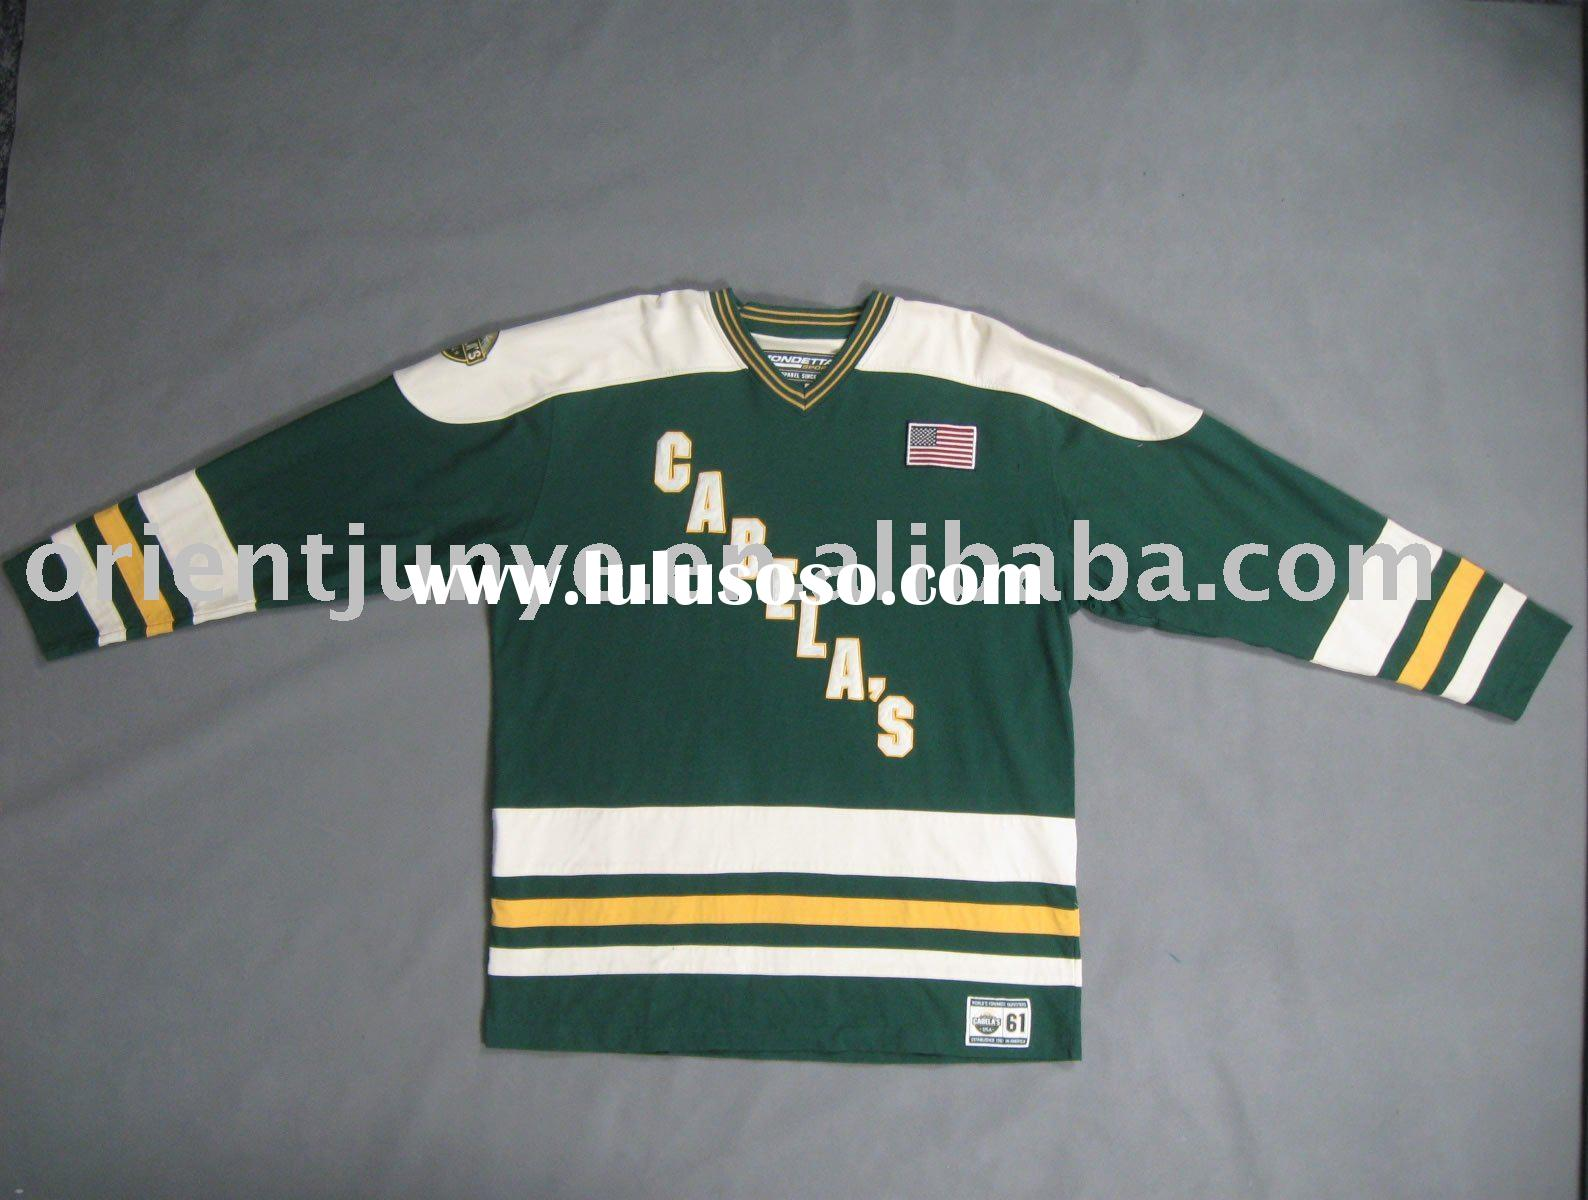 Men's ice hockey jerseys, team, brands jerseys, custom logo